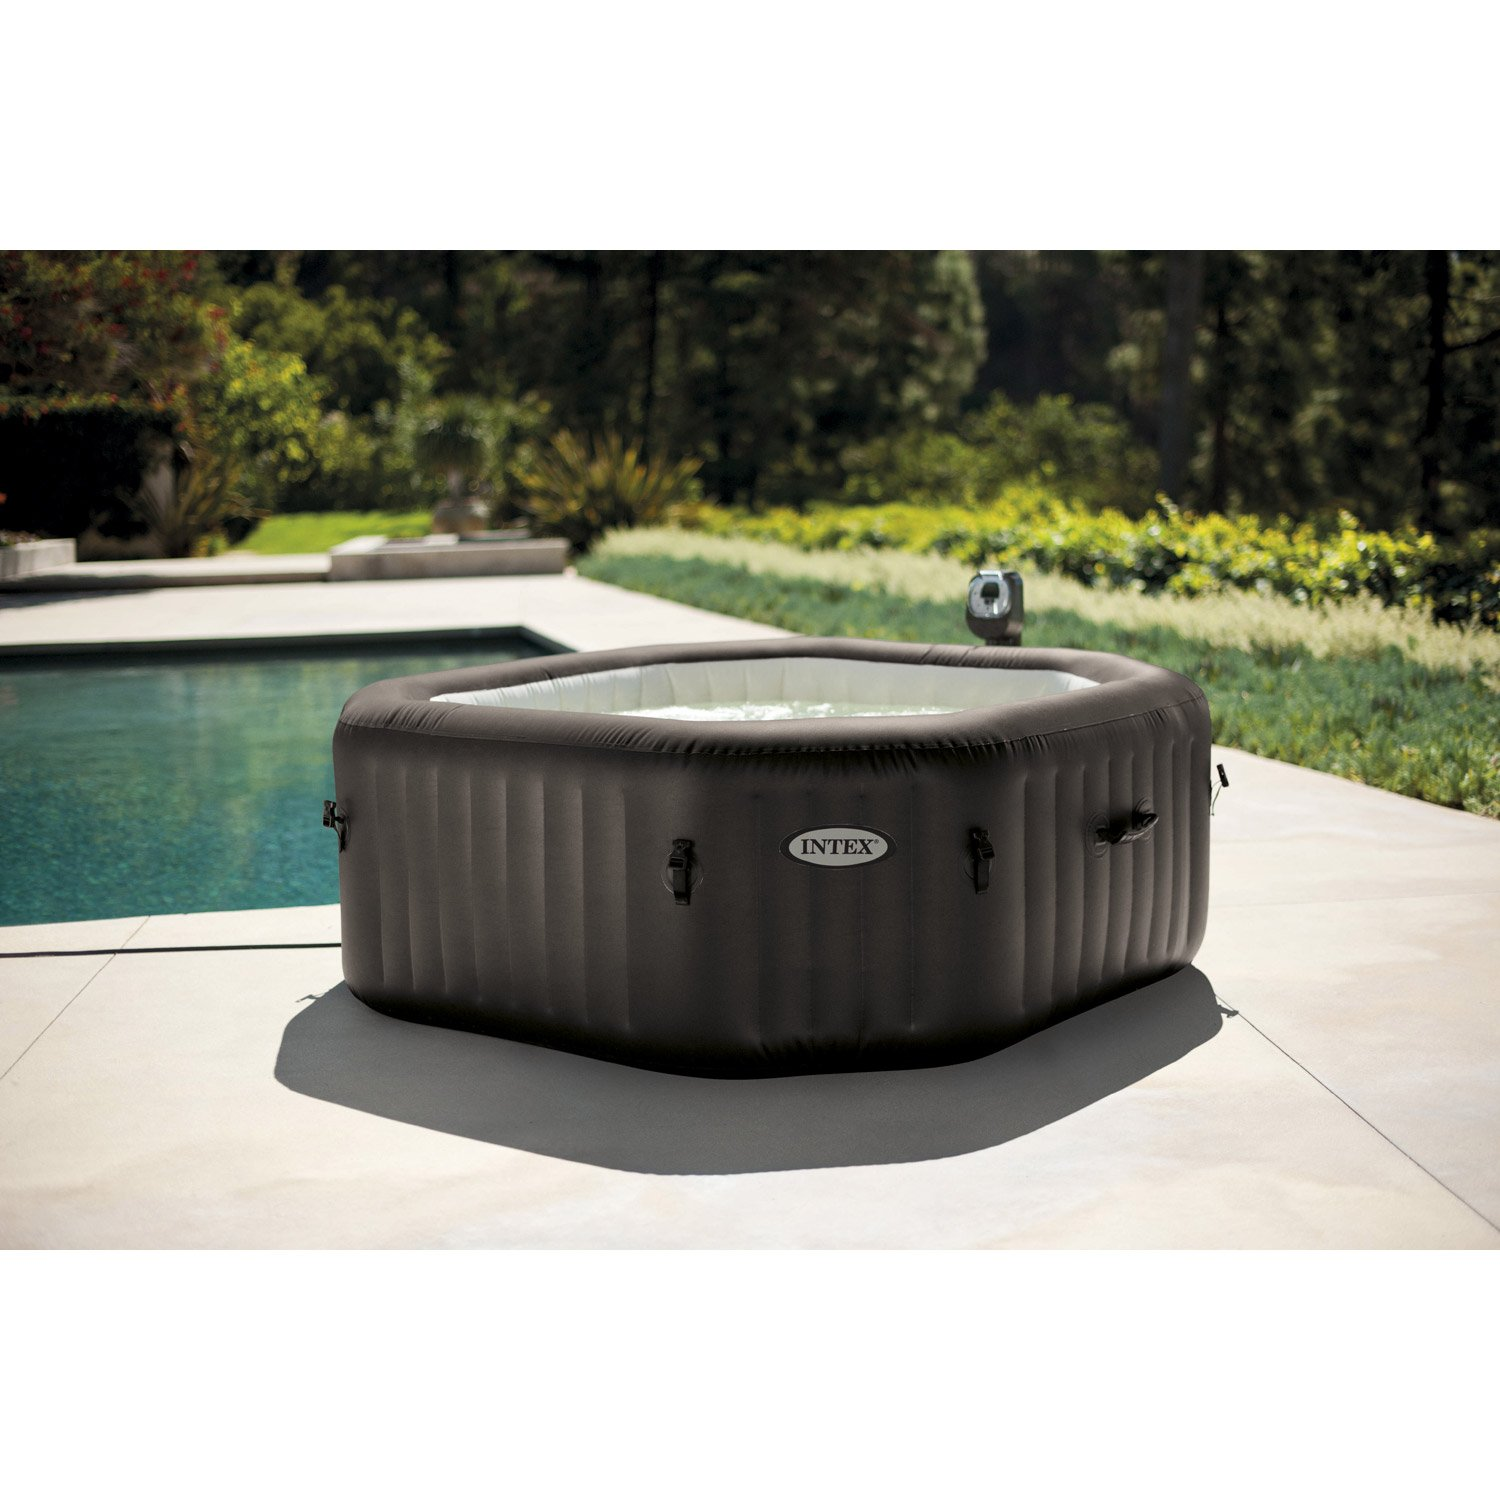 Jacuzzi Intex Leroy Merlin Spa Gonflable 4 Places Leroy Merlin